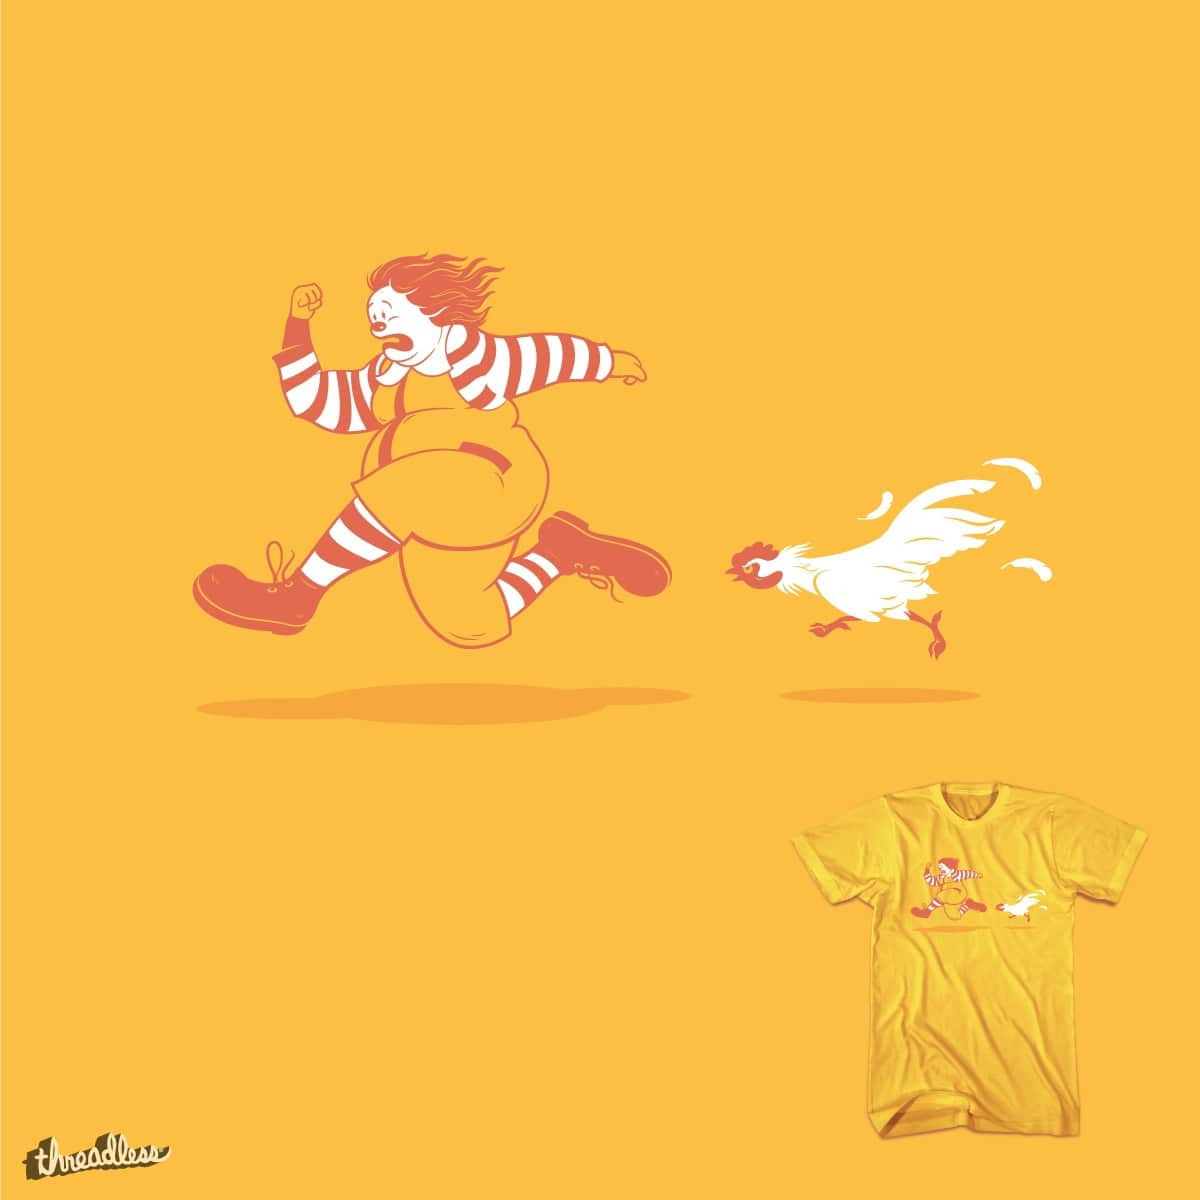 i'm avenging it by anivini on Threadless